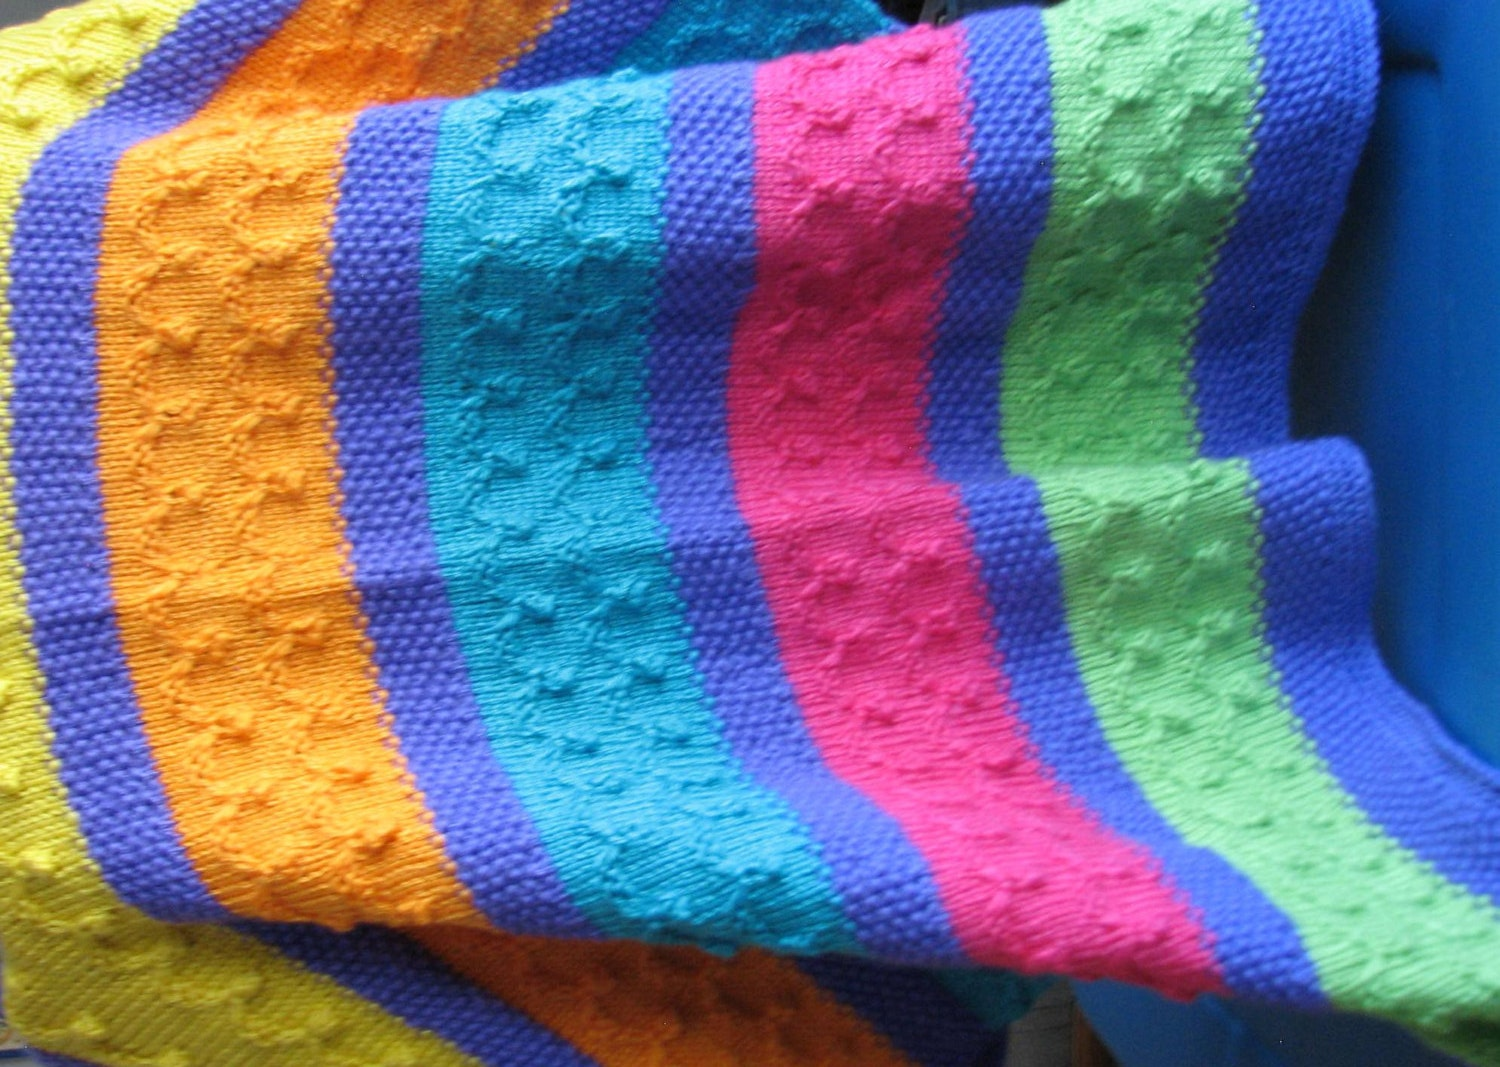 B-022 Multi Colored Knitted Afghan